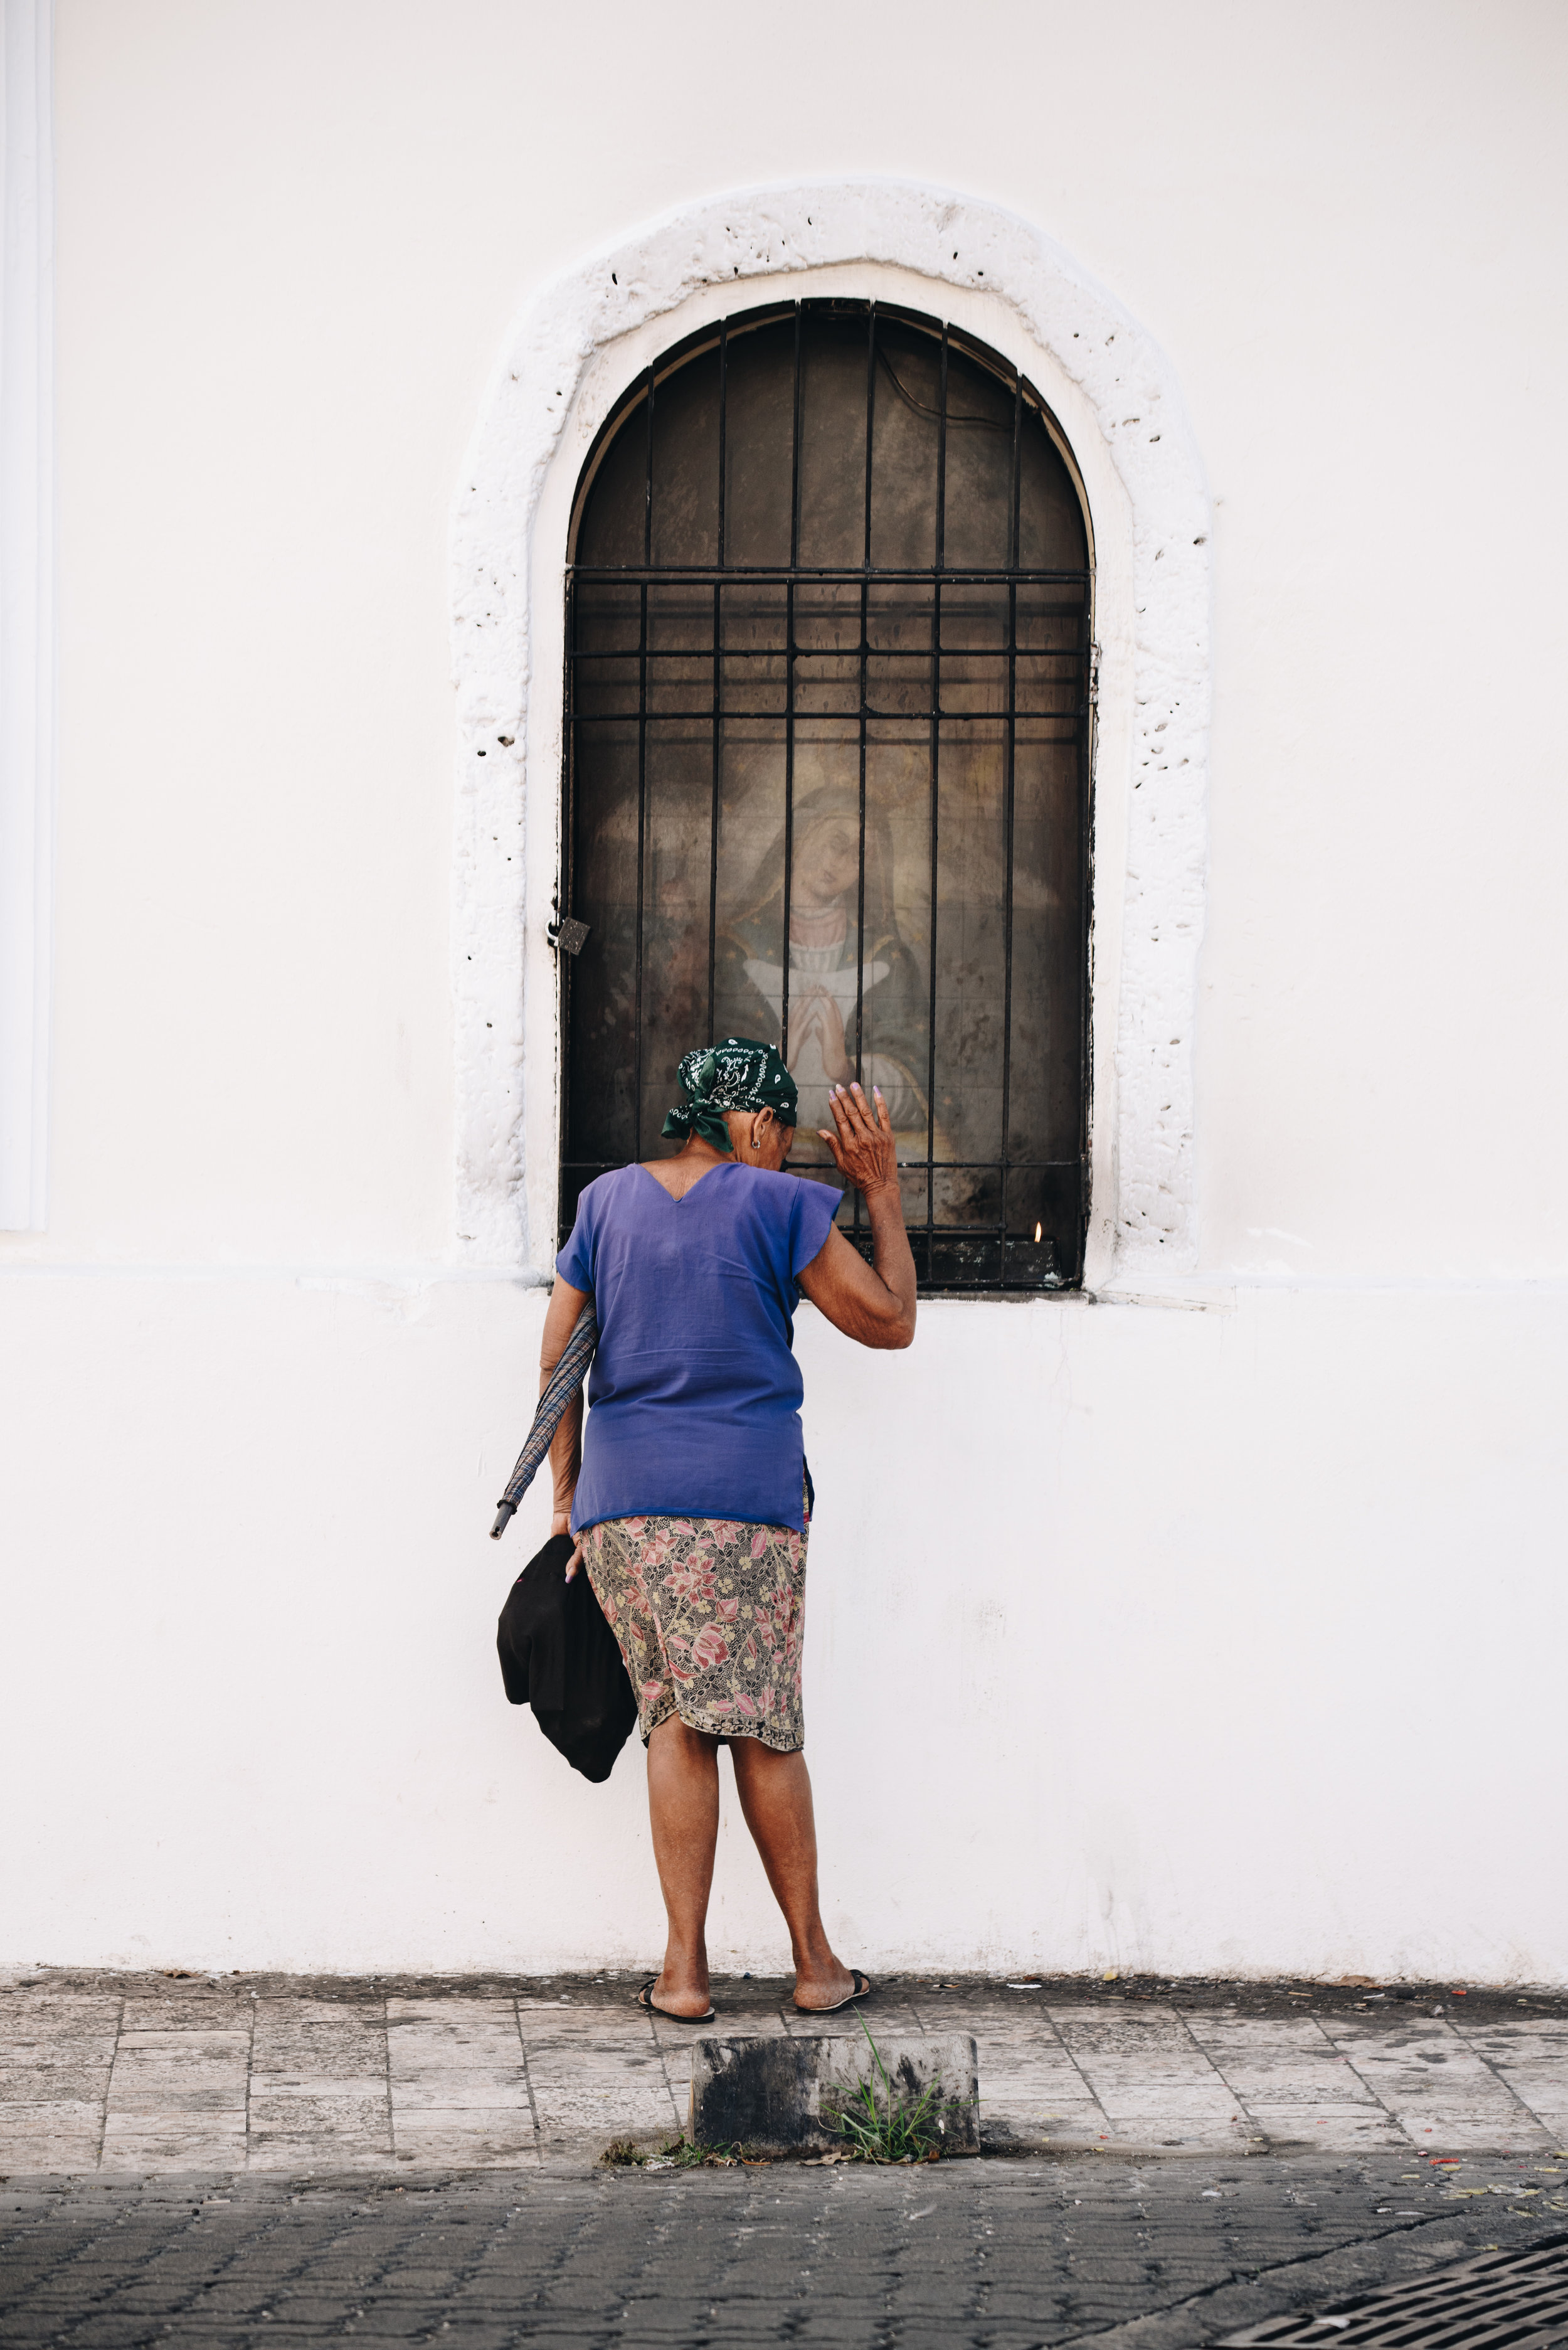 Woman pauses for prayer at church in Zona Colonial, Santo Domingo